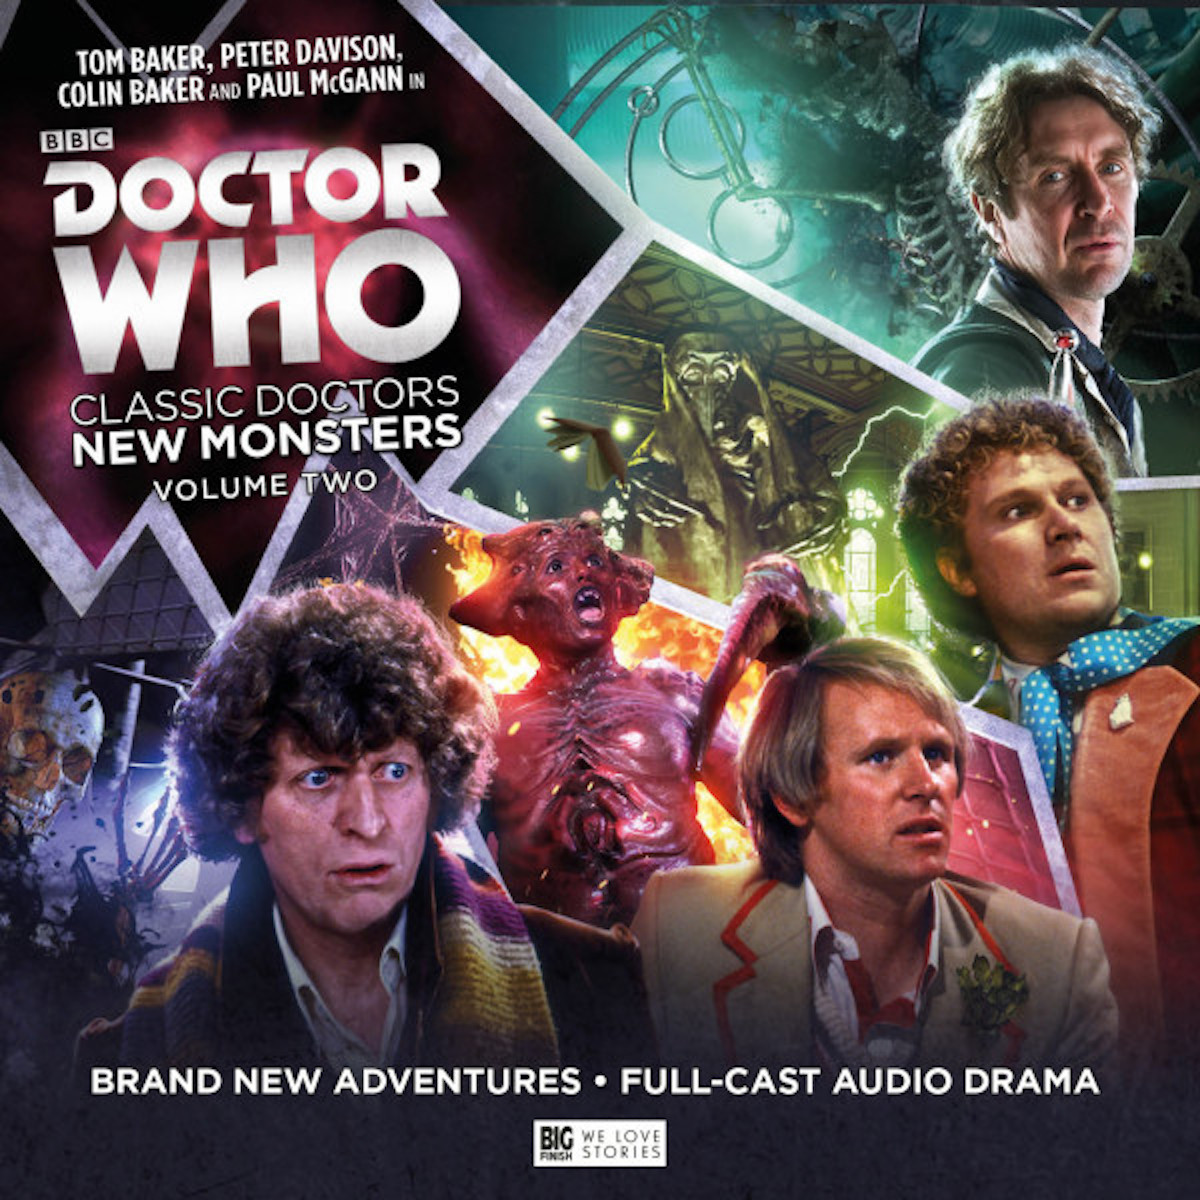 Classic Doctors New Monsters Volume 2